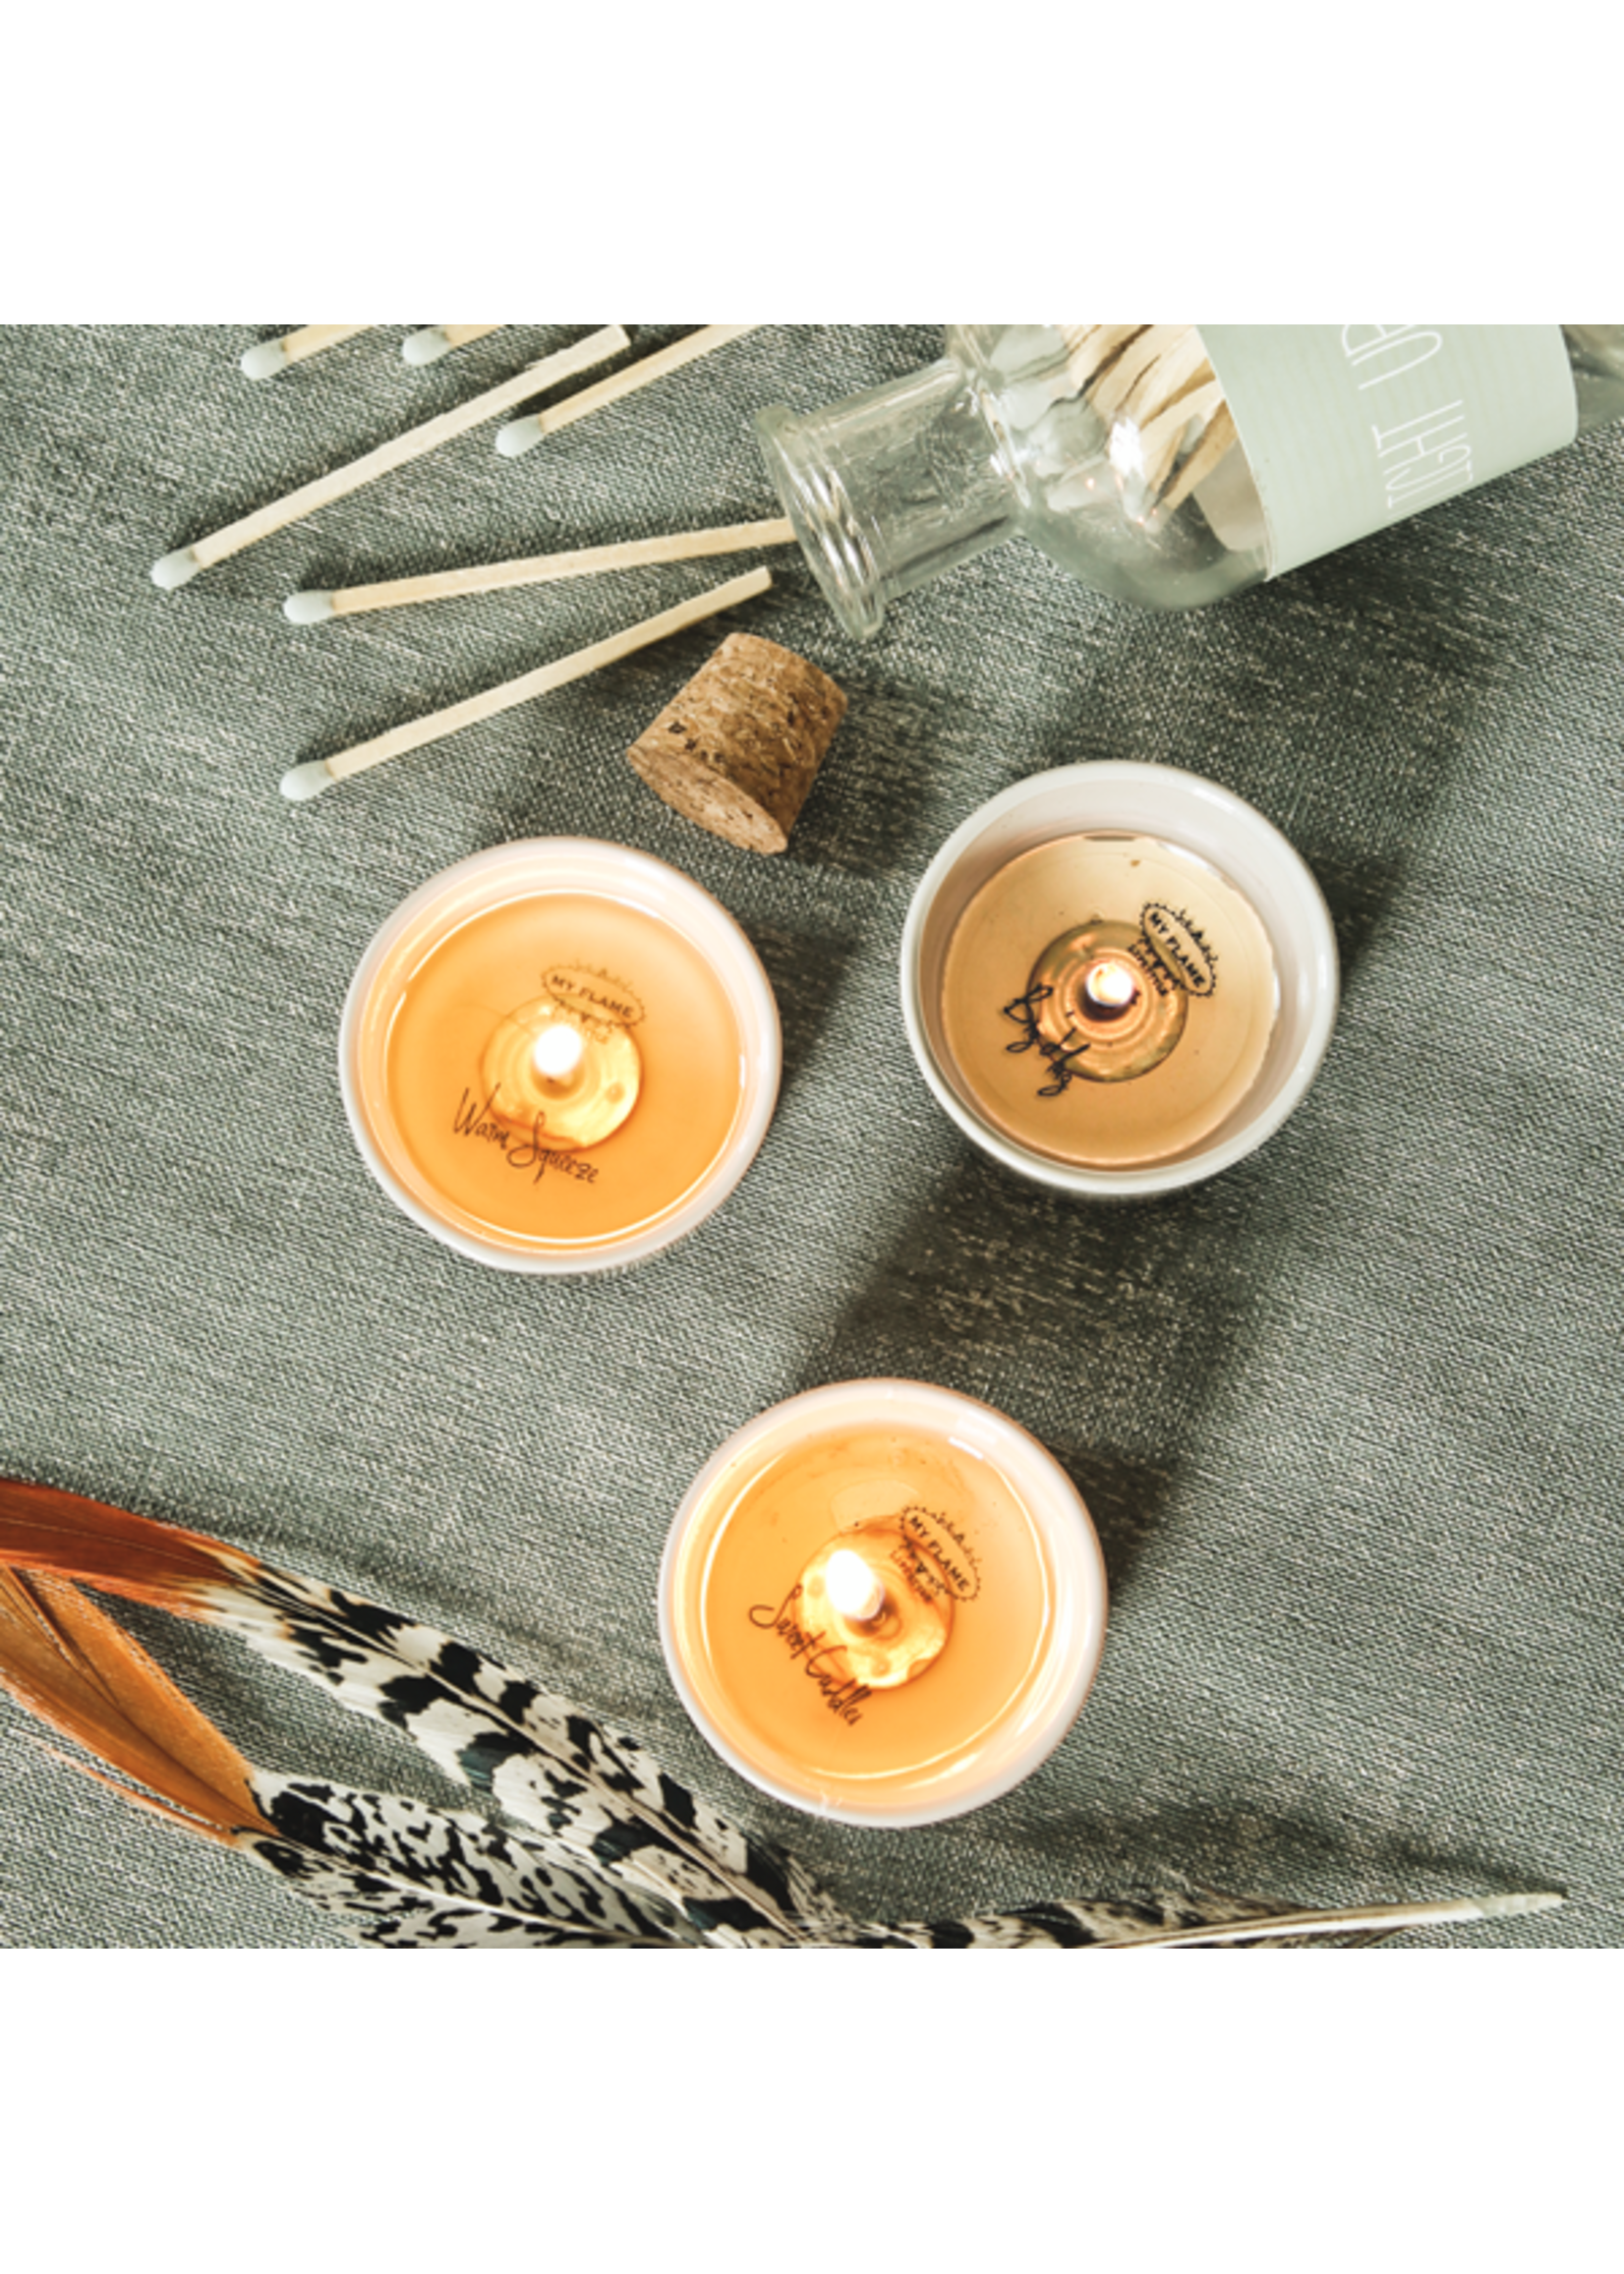 My Flame Surprise soy candles White-You rock, You are gold, You are amazing